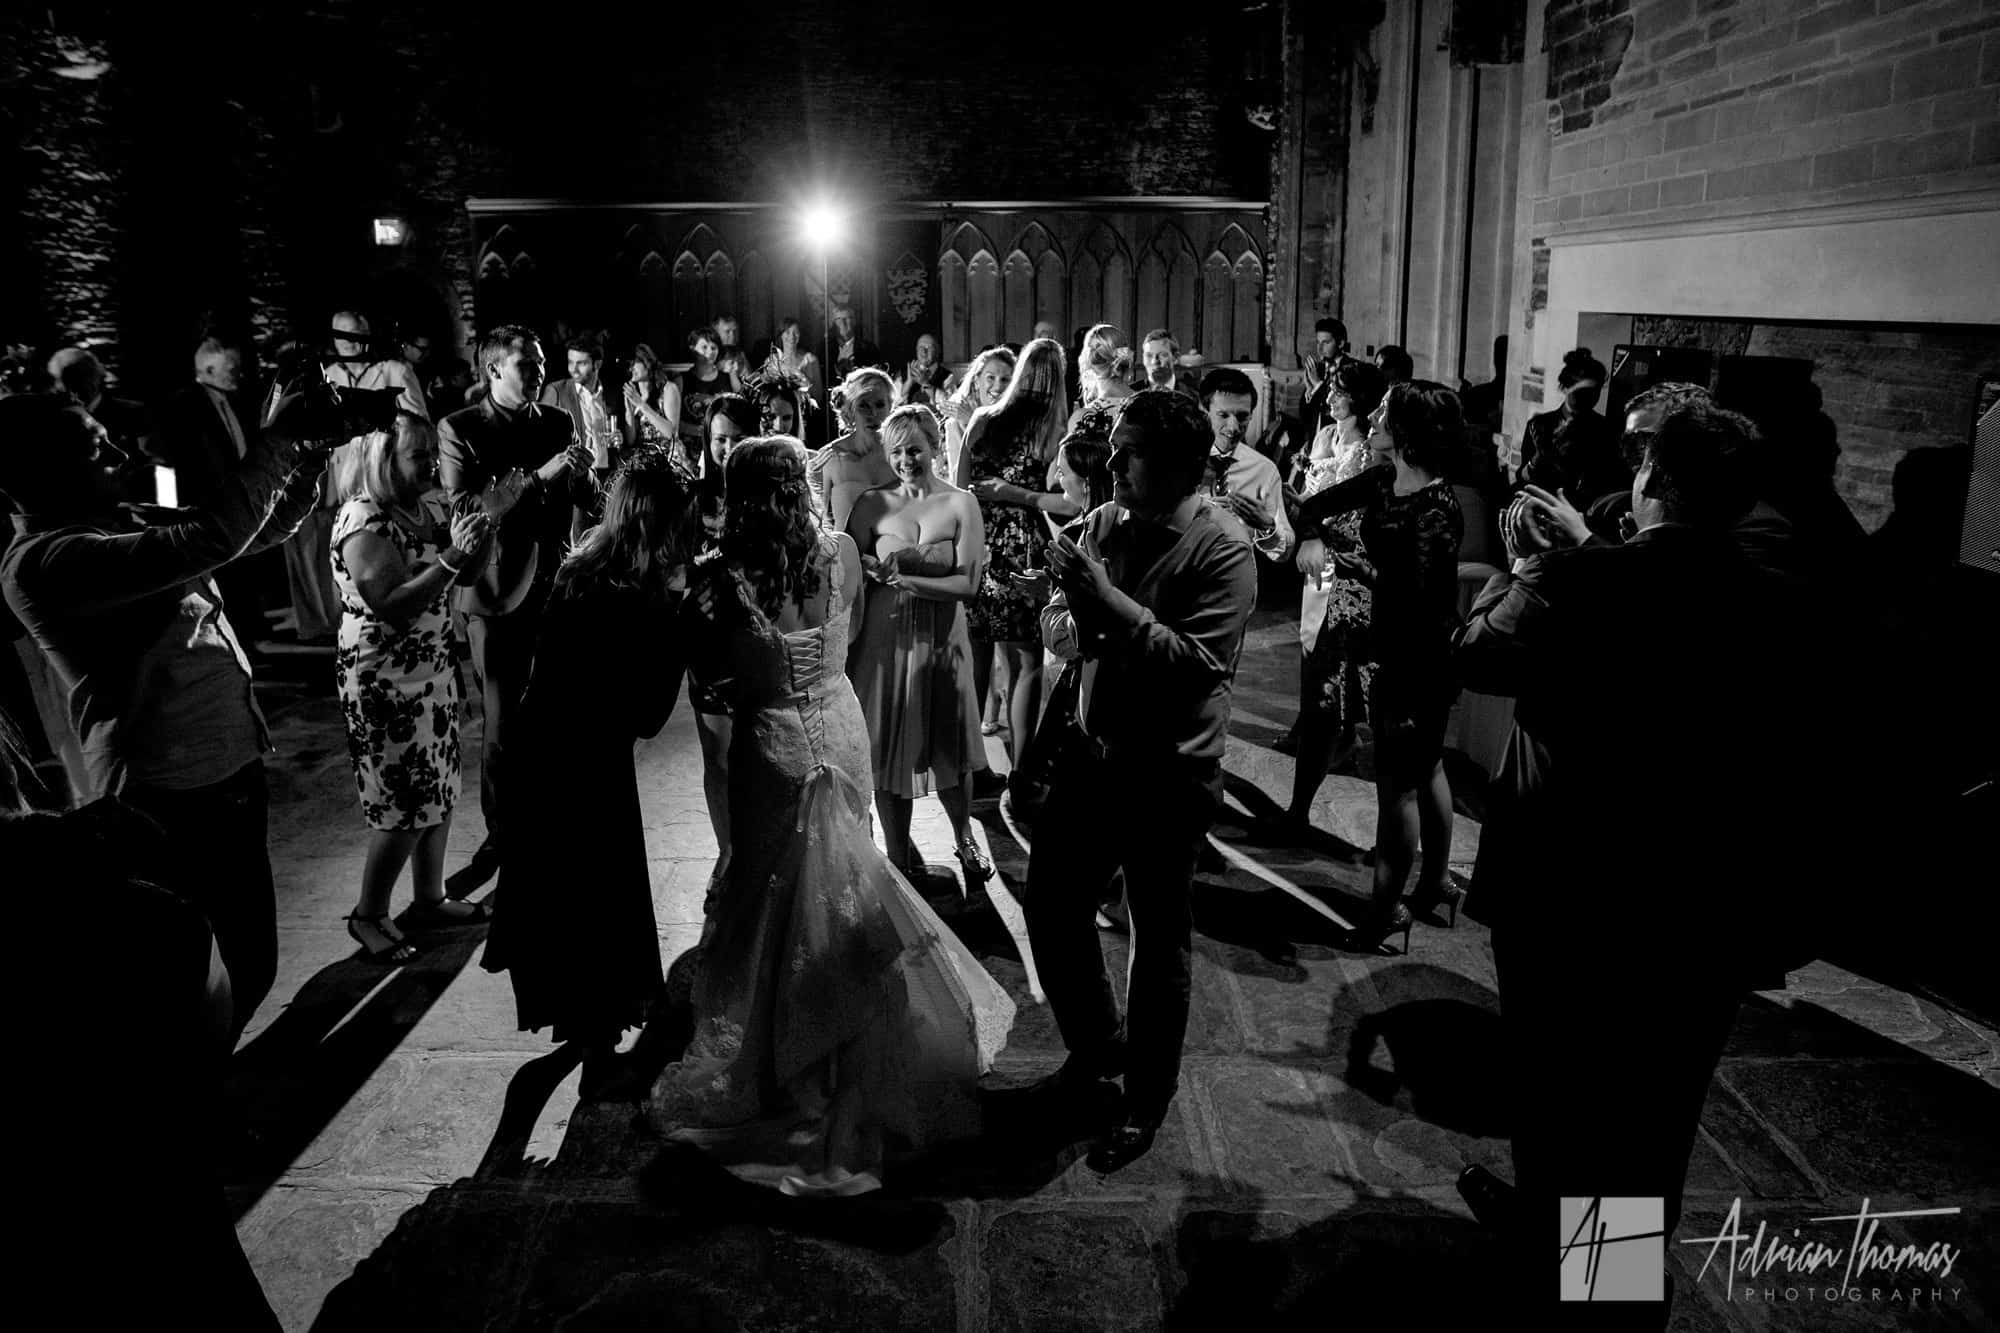 Guests dancing at wedding.